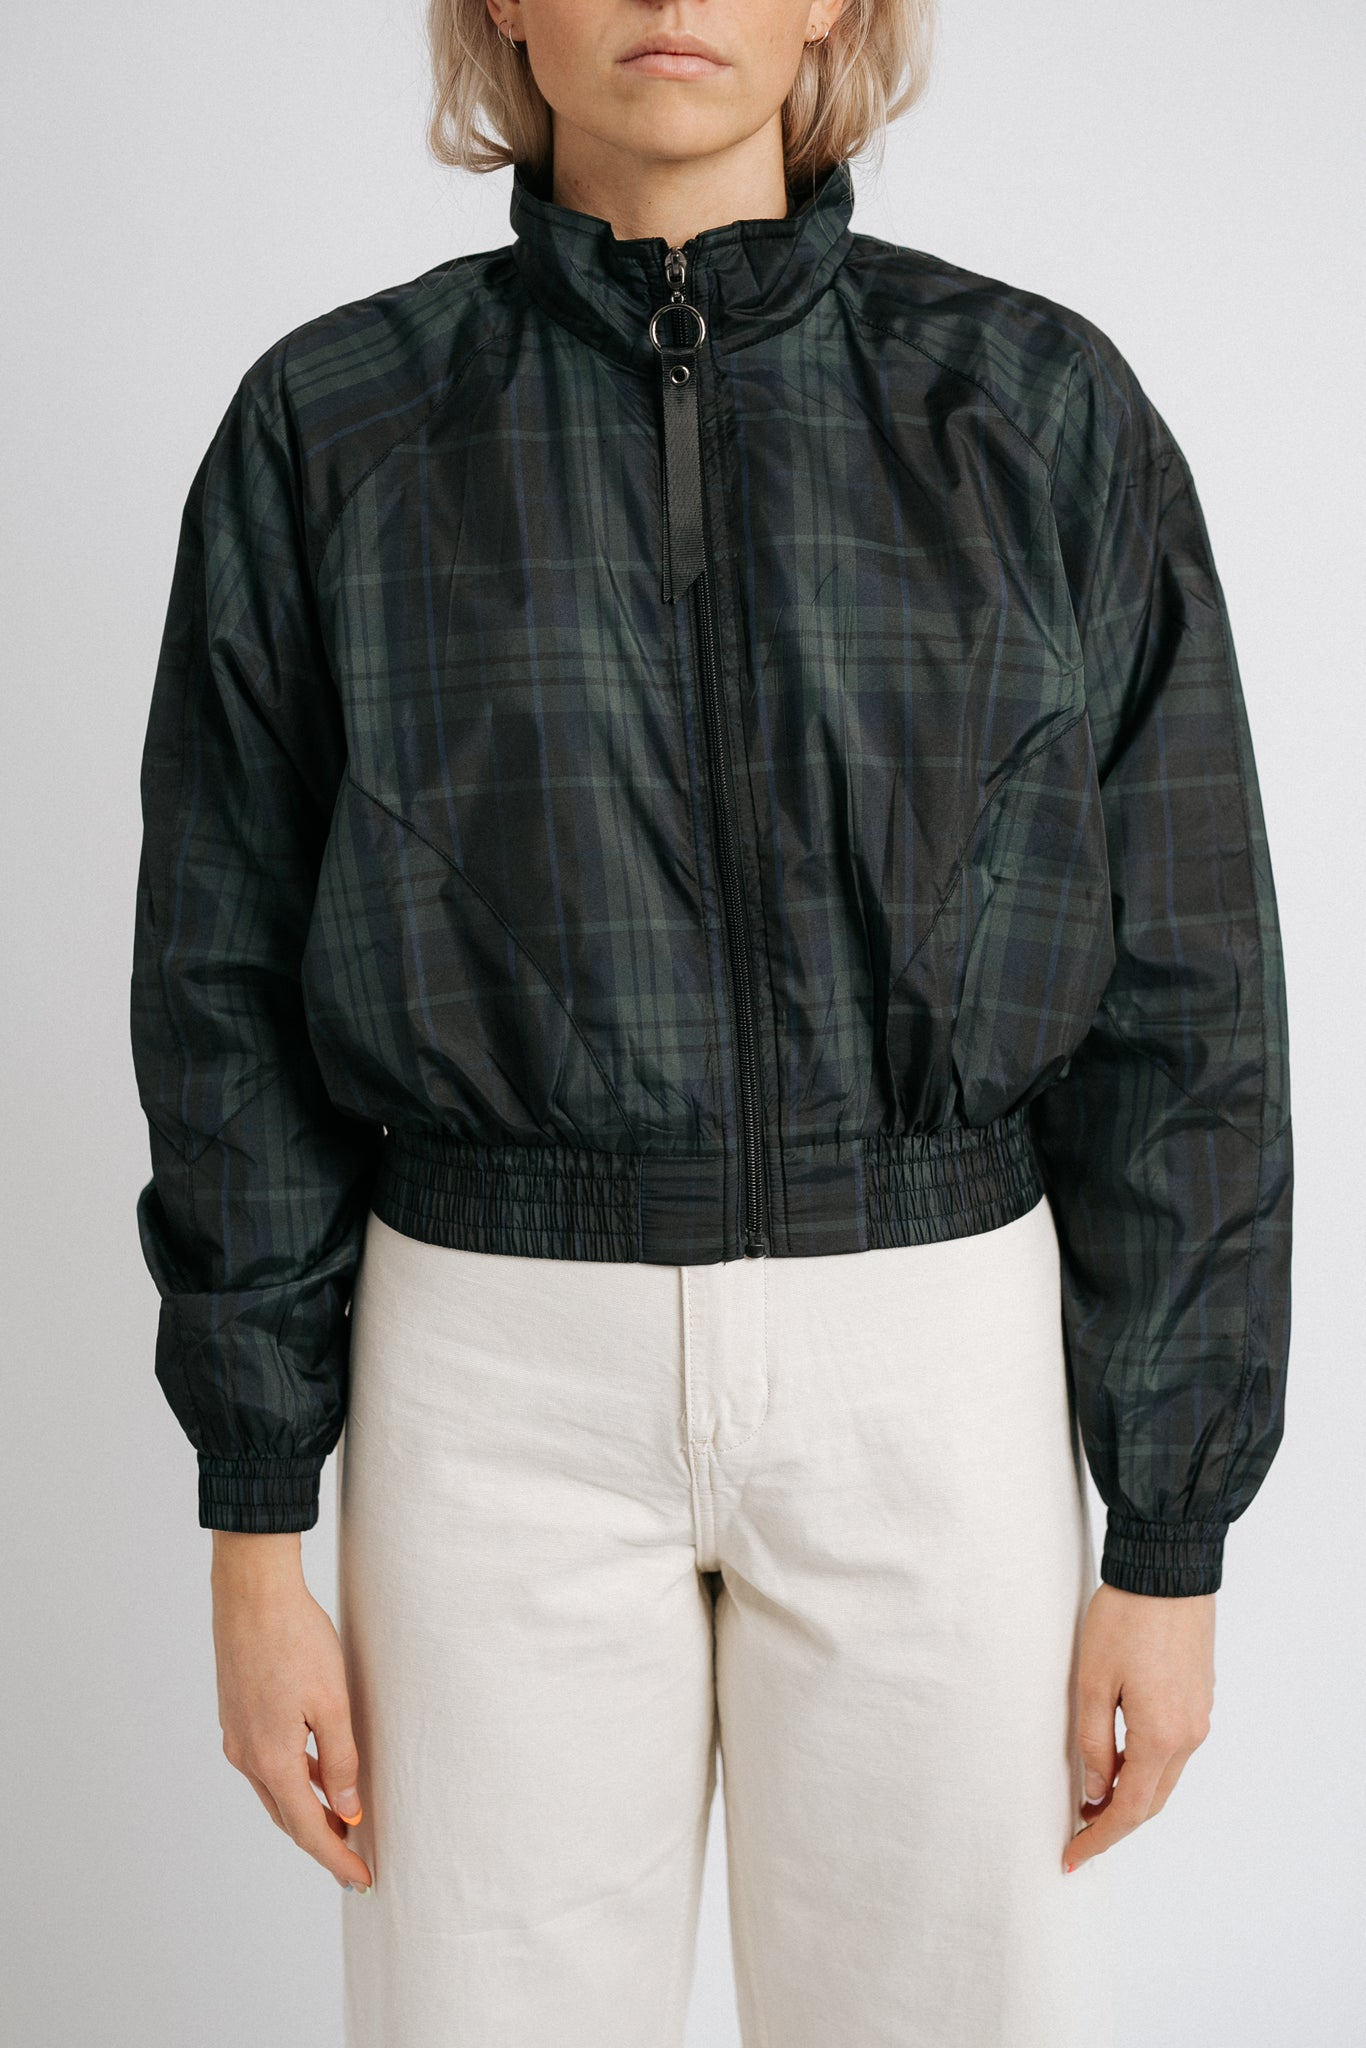 The Plaid You're Here Rain Jacket